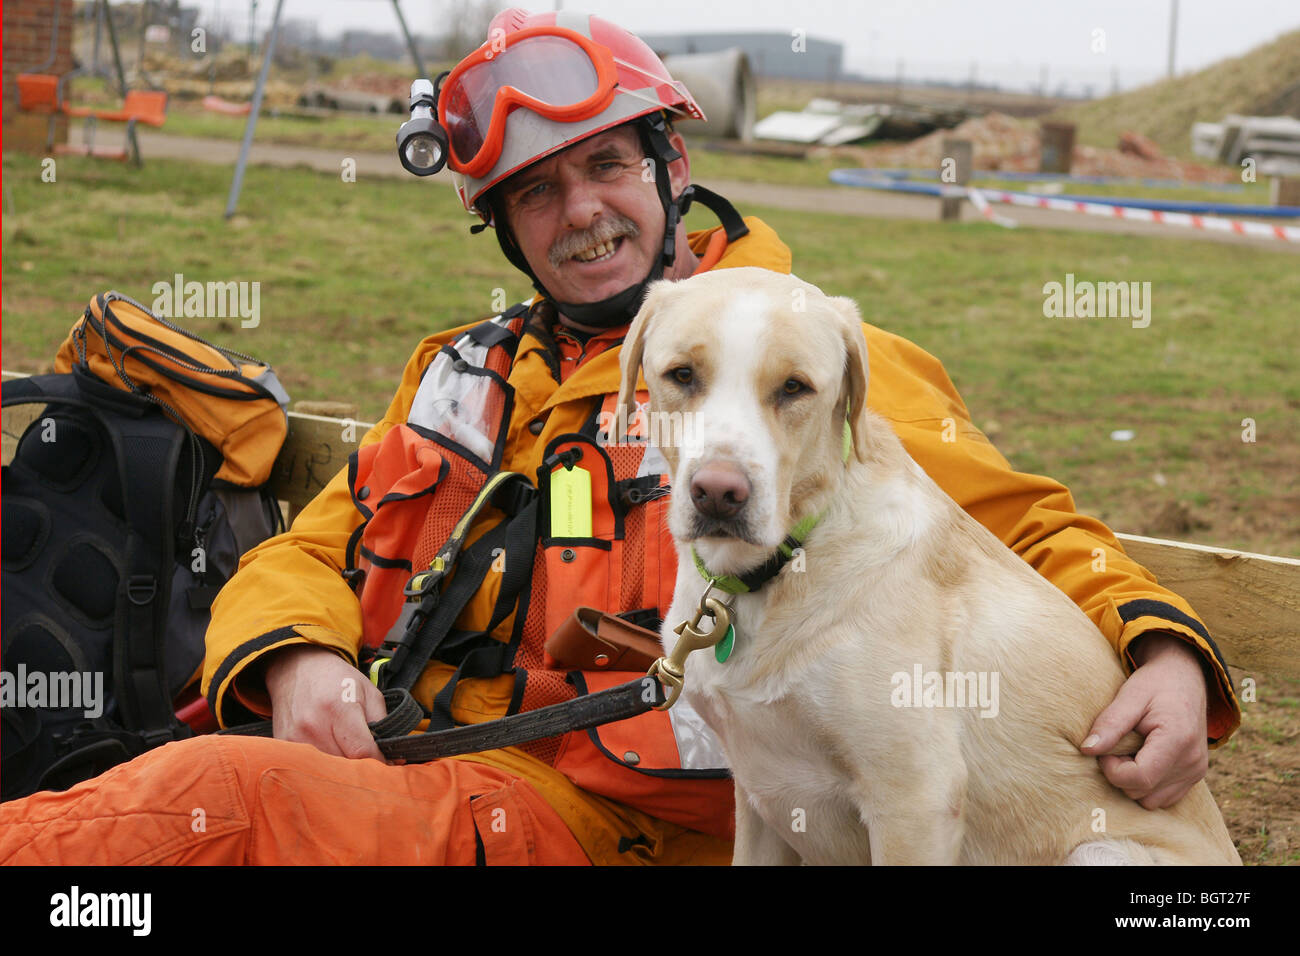 fire-fighter with Rescue dog - Stock Image